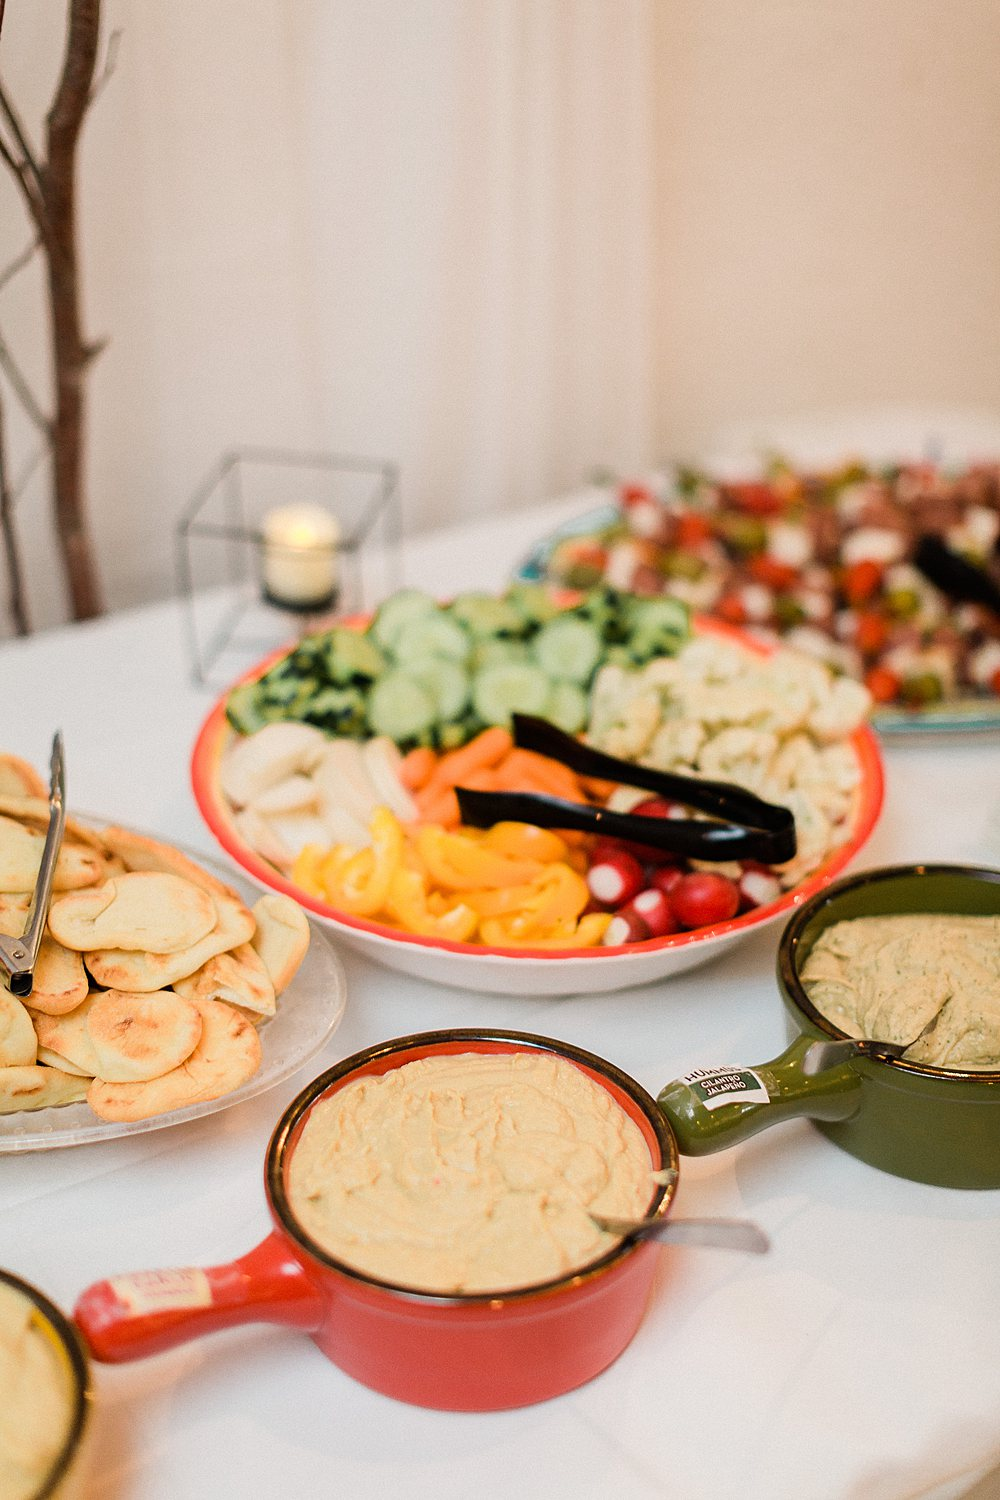 North_Central_Wisconsin_Event_Wedding_Venues_Fall_Weddings_The_Bailiwick_Venue_James-Stokes-Photography095.jpg